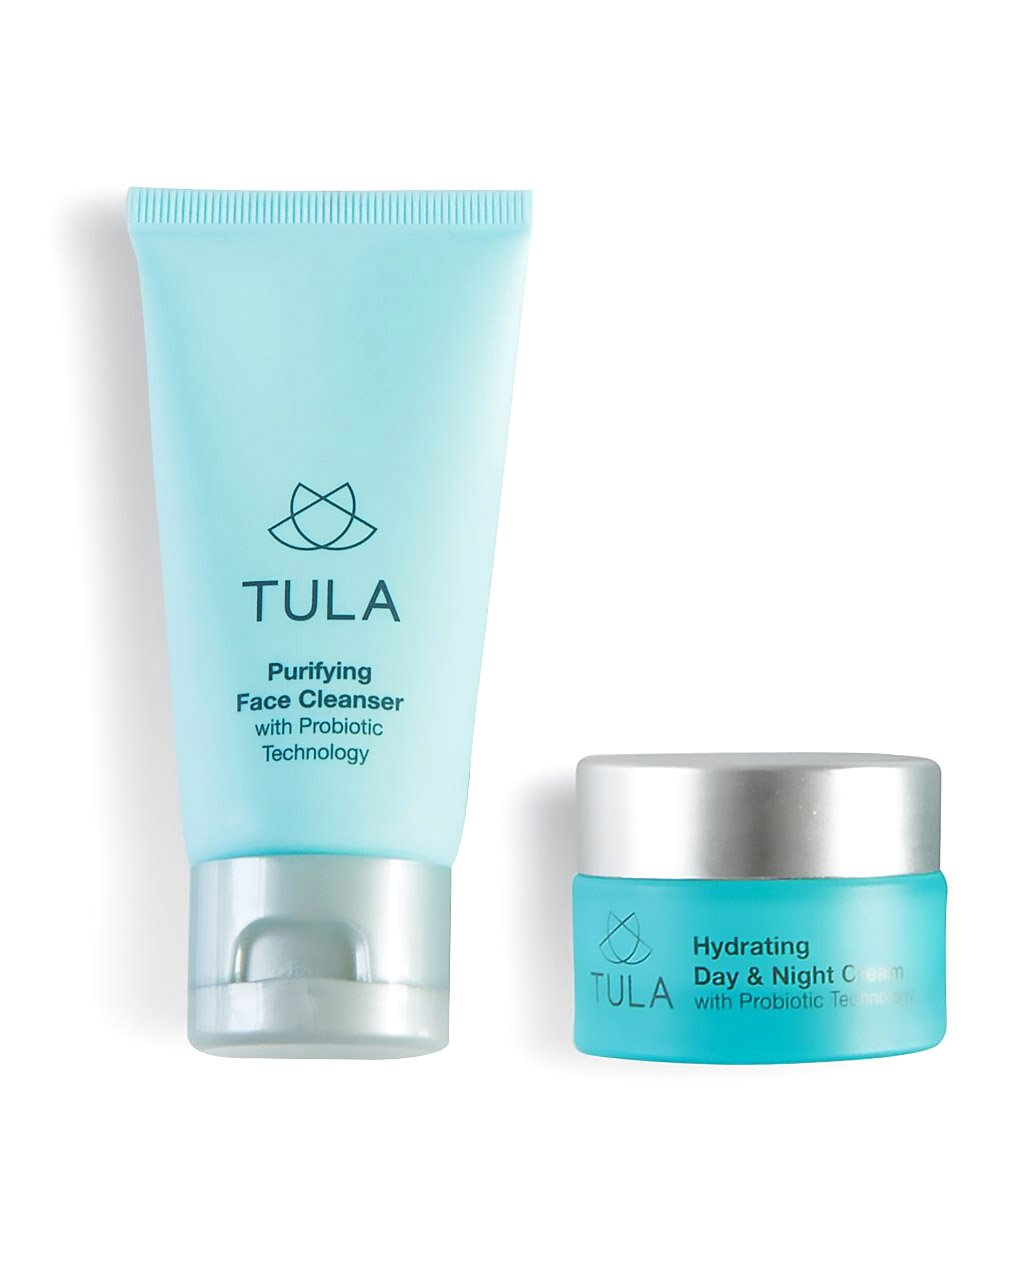 TULA Probiotic Skin Care Mini Best Sellers Kit - Travel-friendly kit with Purifying Cleanser and Mini Hydrating Day & Night Cream for Healthy and Hydrated Skin by TULA Skin Care (Image #1)